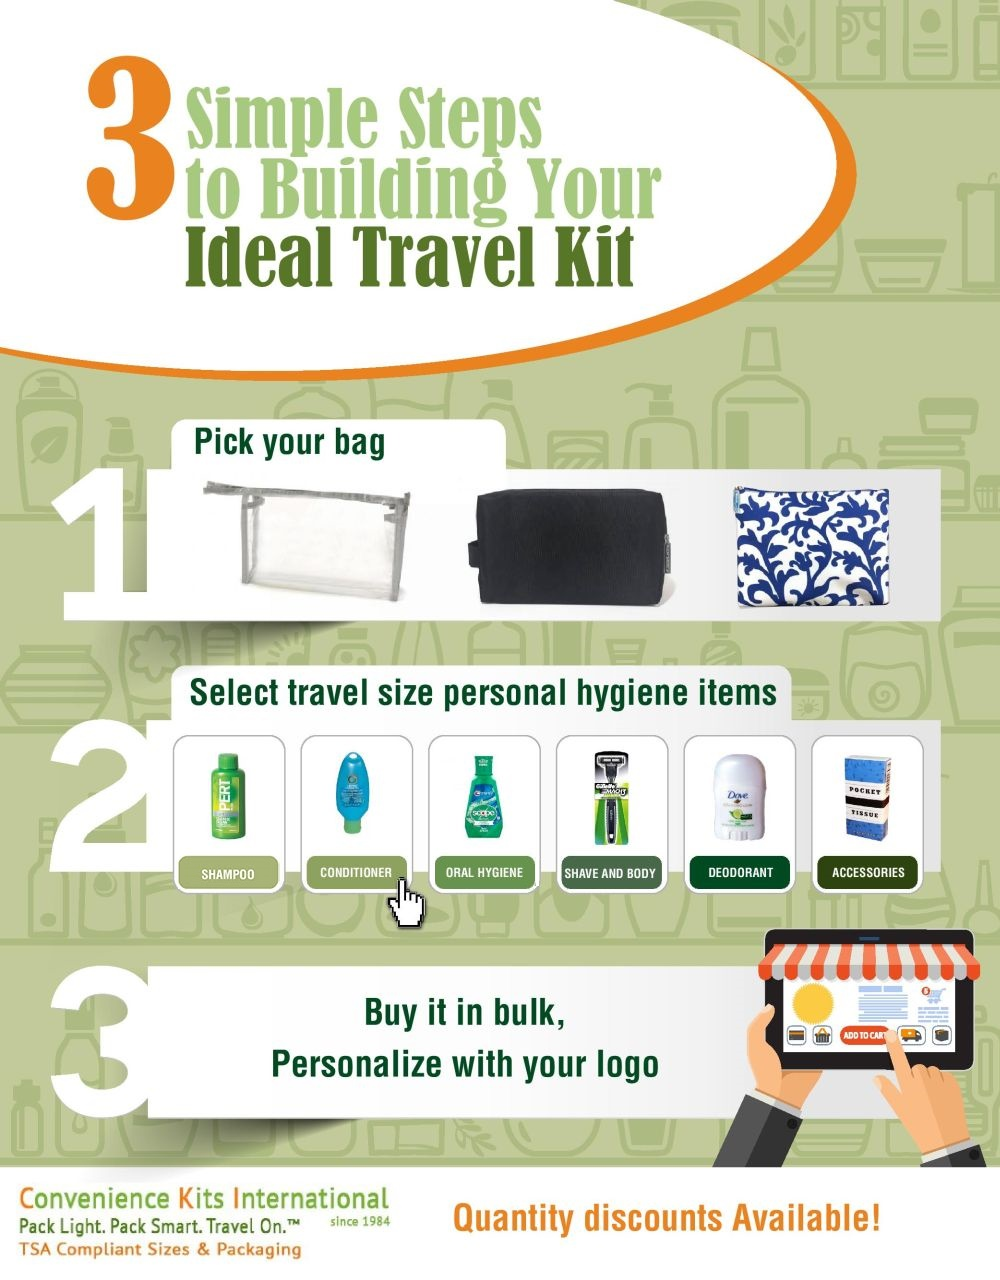 3 simple steps to build your ideal travel kit